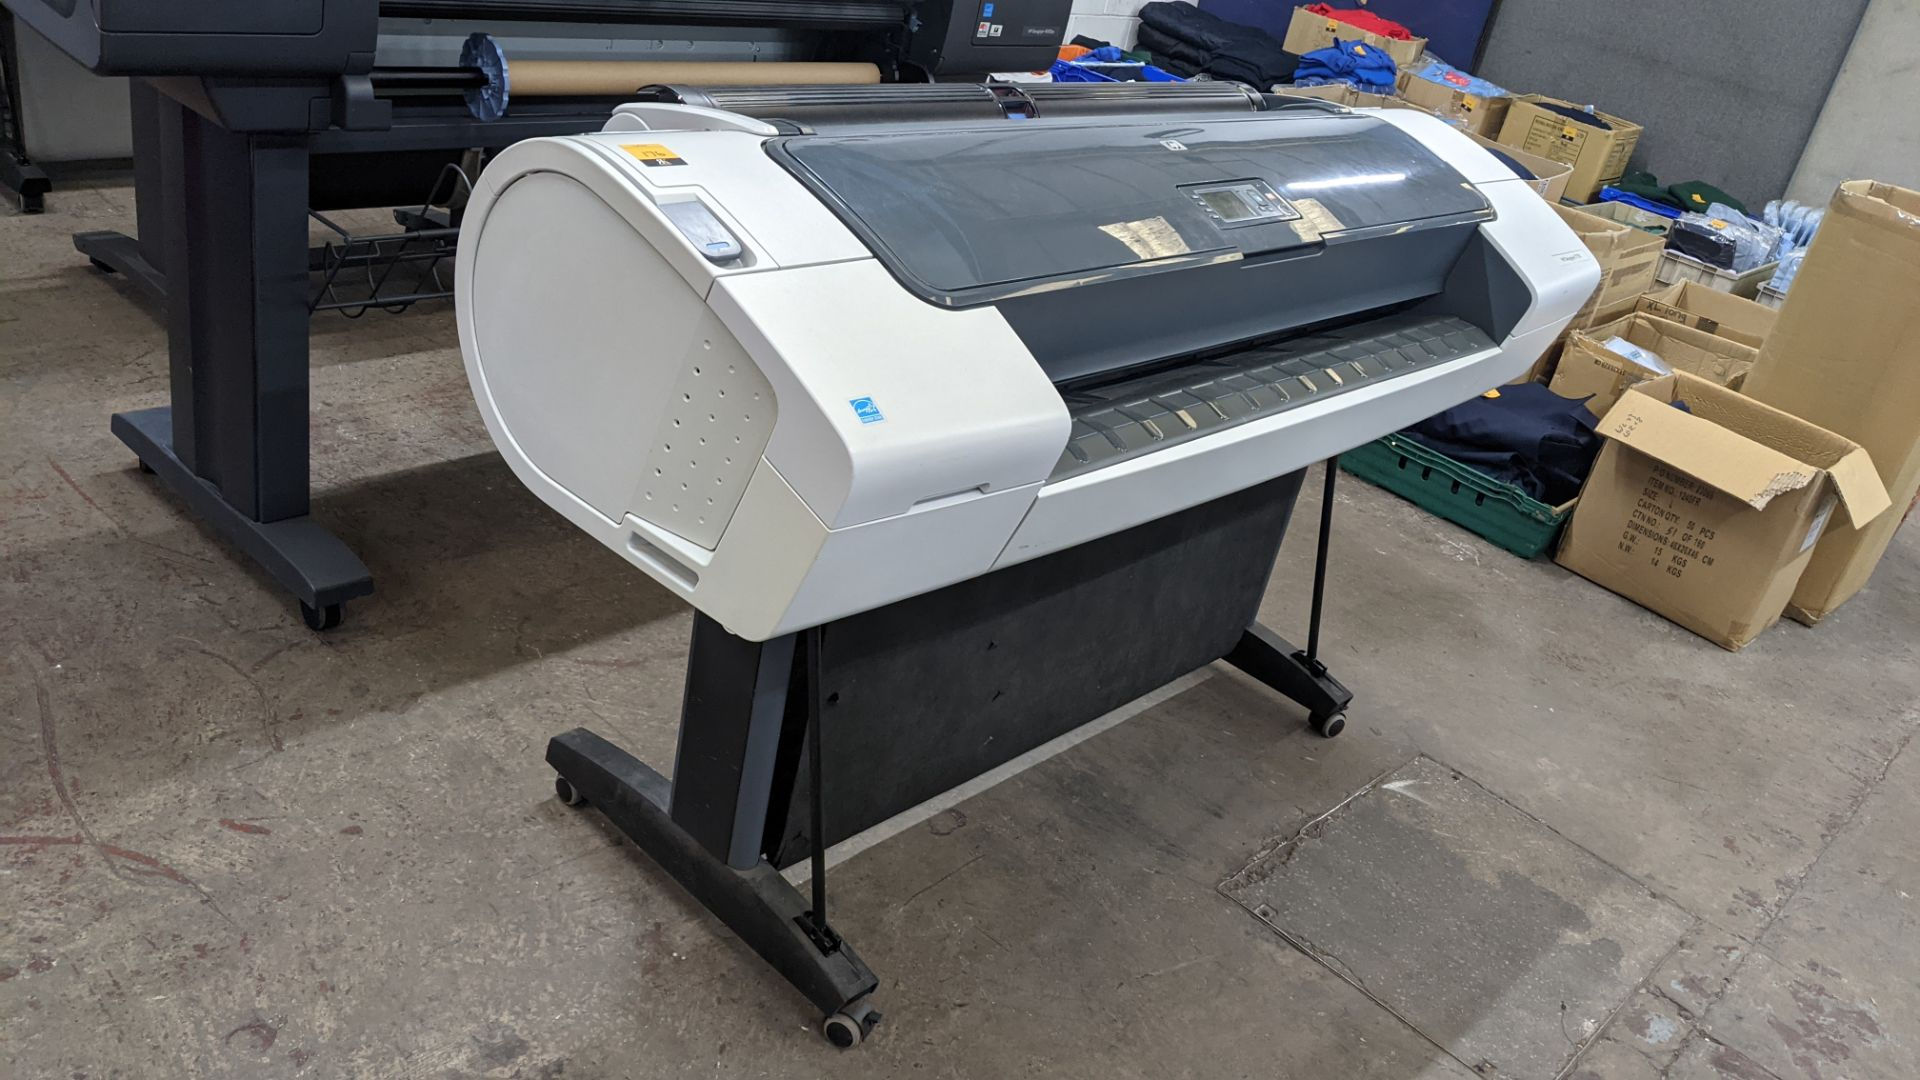 HP DesignJet T770 wide format printer, product number CH539A/CN375A, factory number CH539-64001 (44""